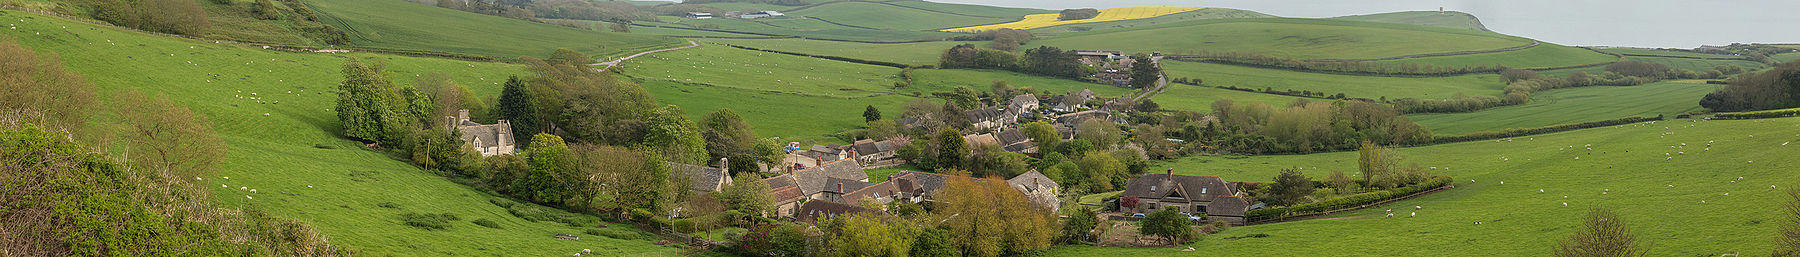 Kimmeridge, Dorset, UK banner.jpg